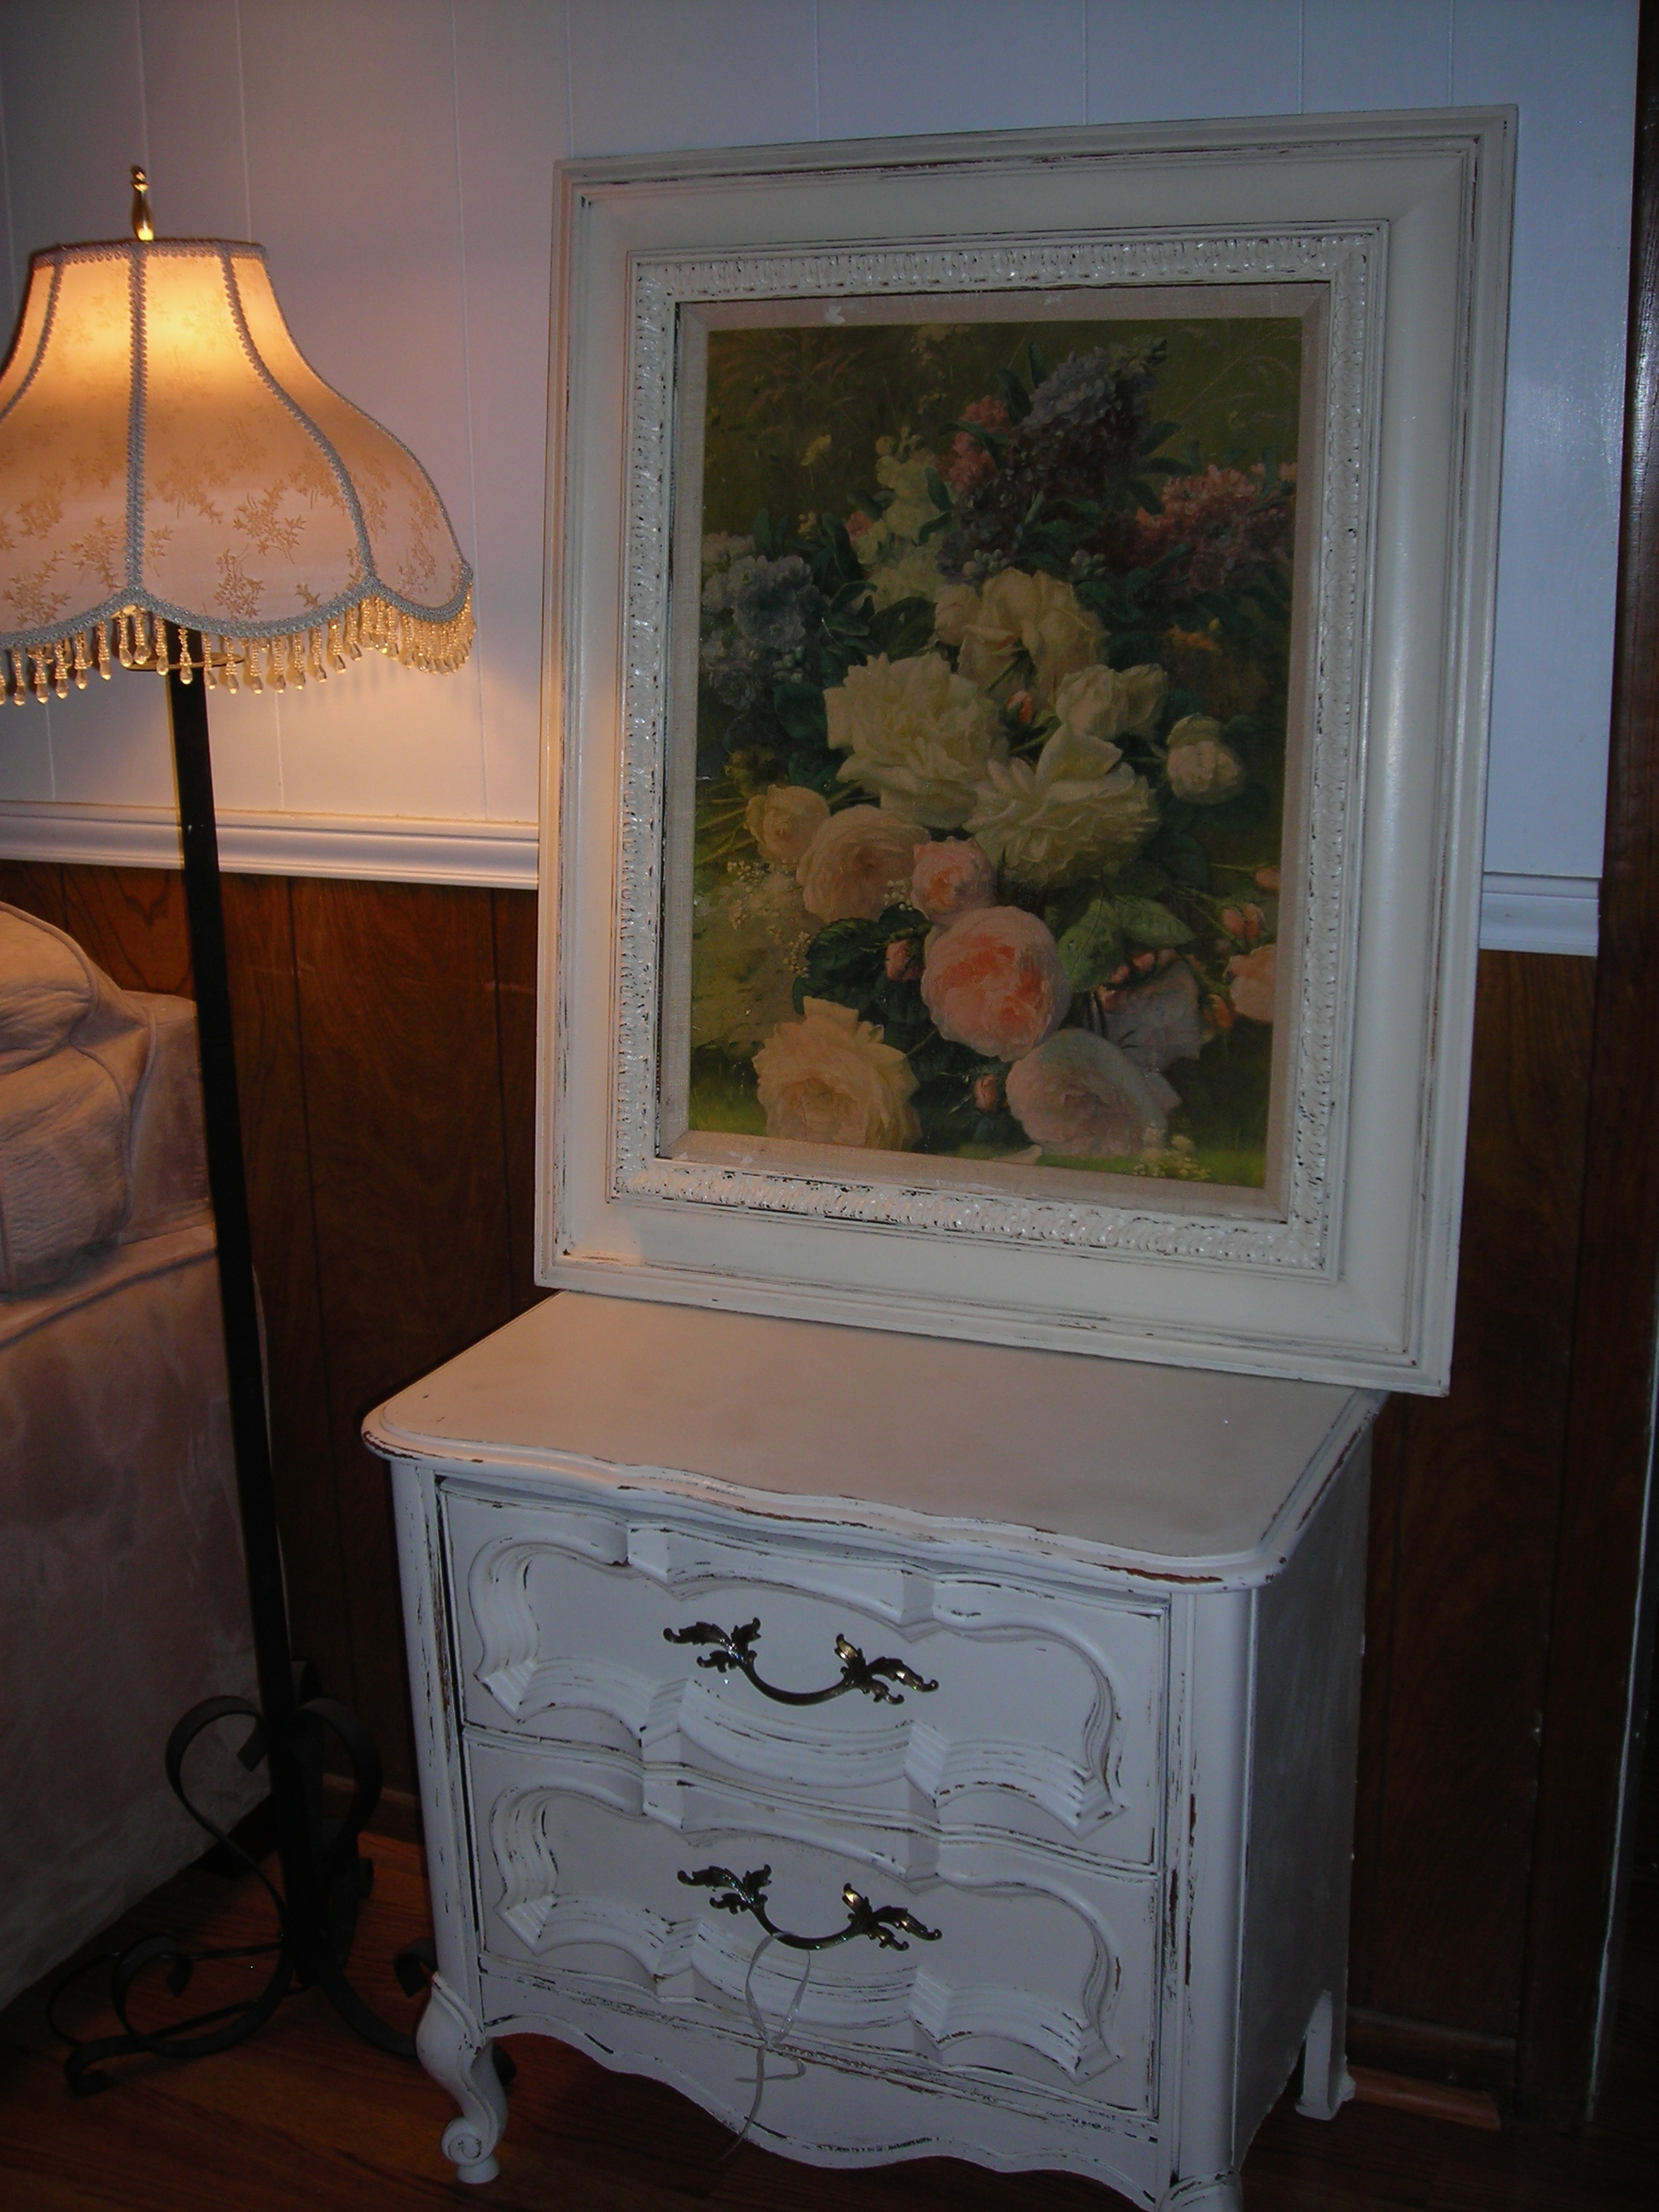 The little dresser is Sue's magic. The picture and frame are from Sue as well